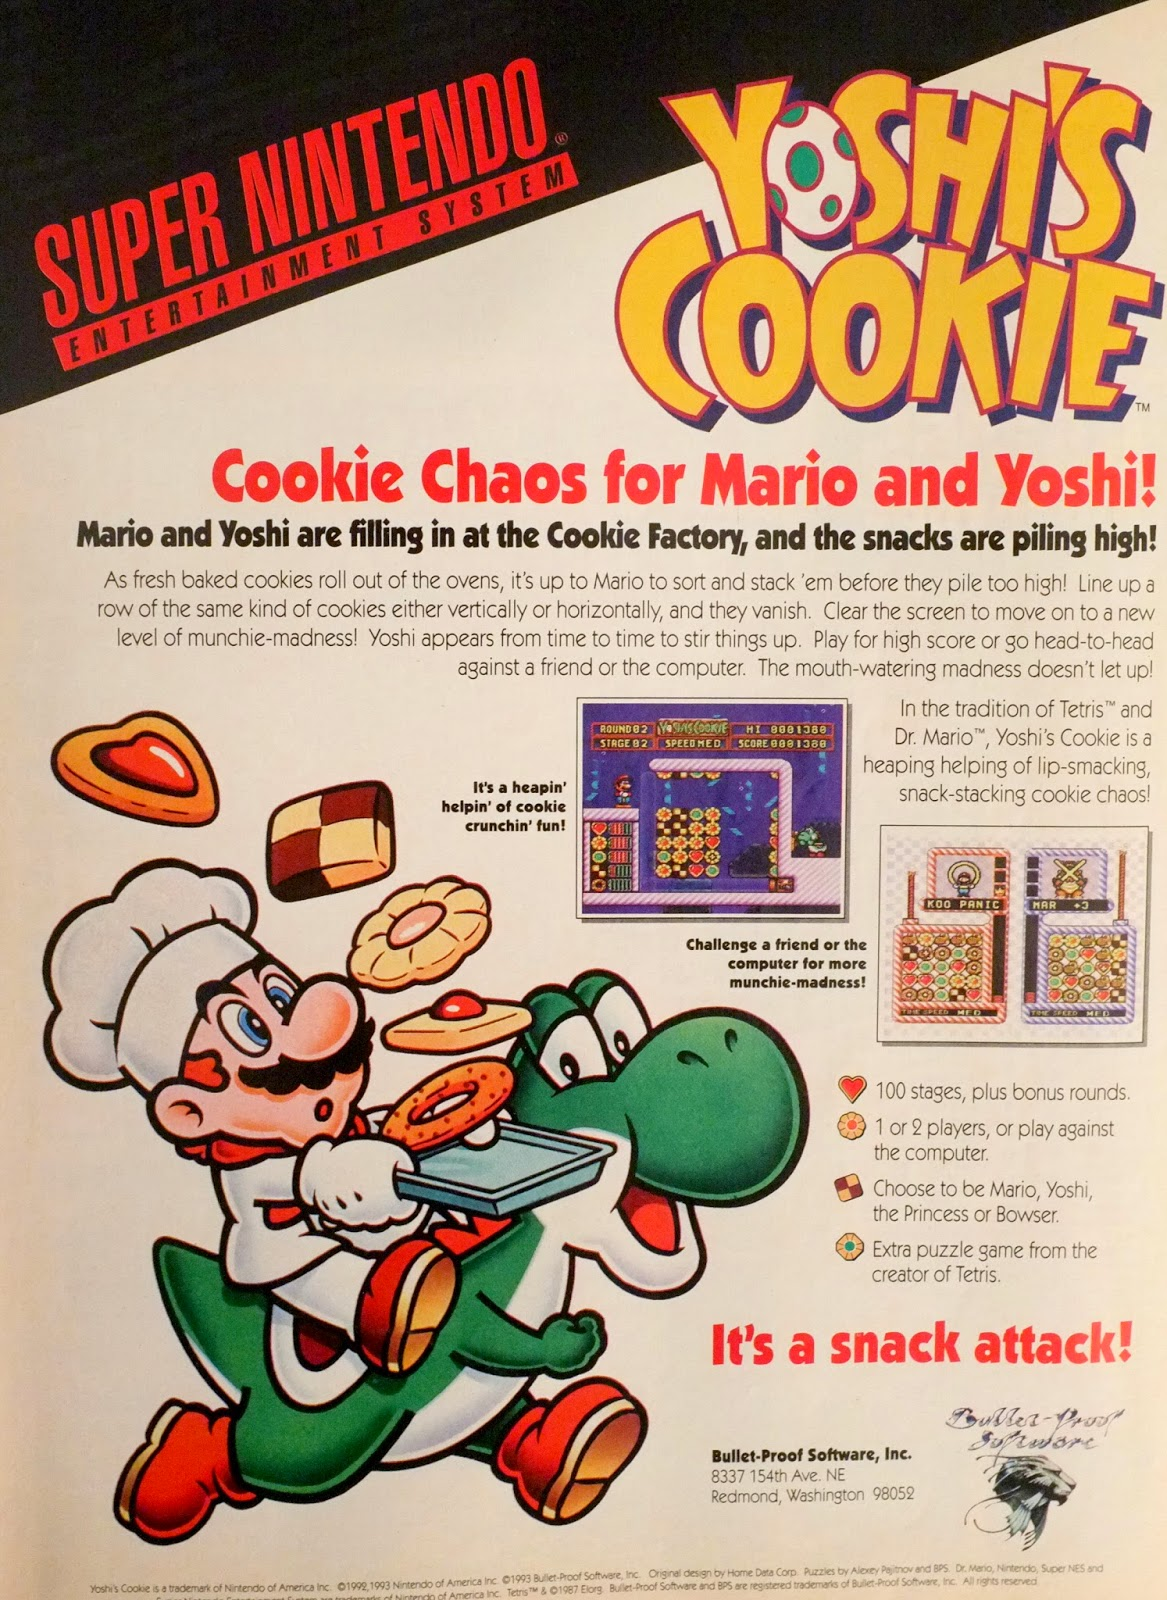 Yoshi's cookie advertisement